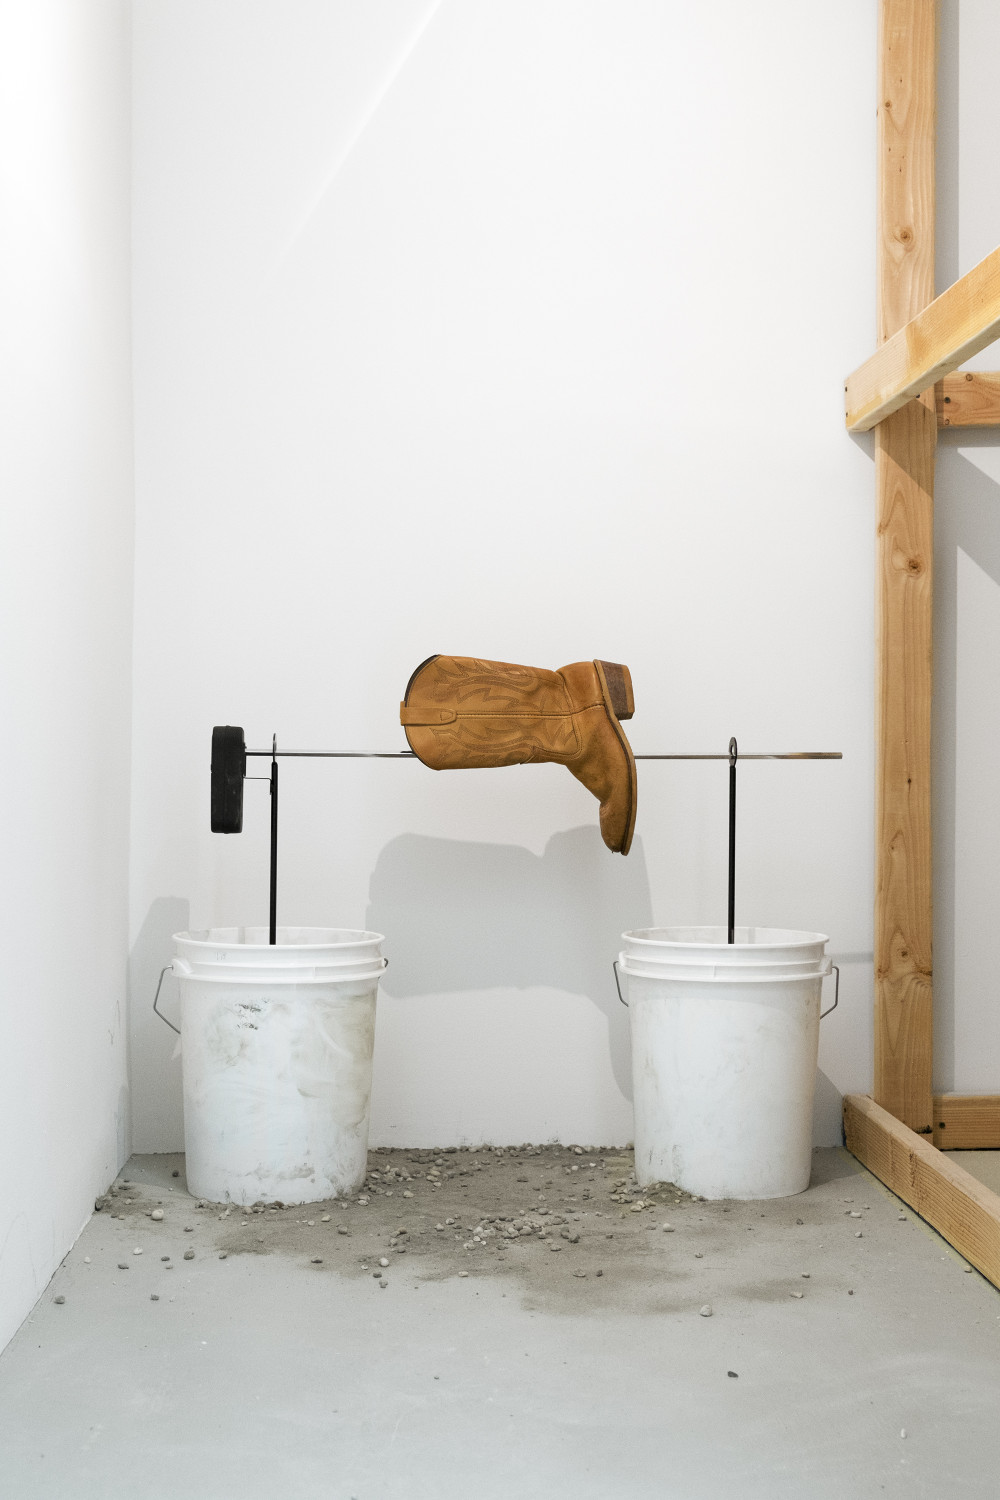 Quintessa Matranga Ask the Dust, 2016 Buckets, concrete, outdoor spit rotisserie, batteries, and leather boot. Dimensions variable